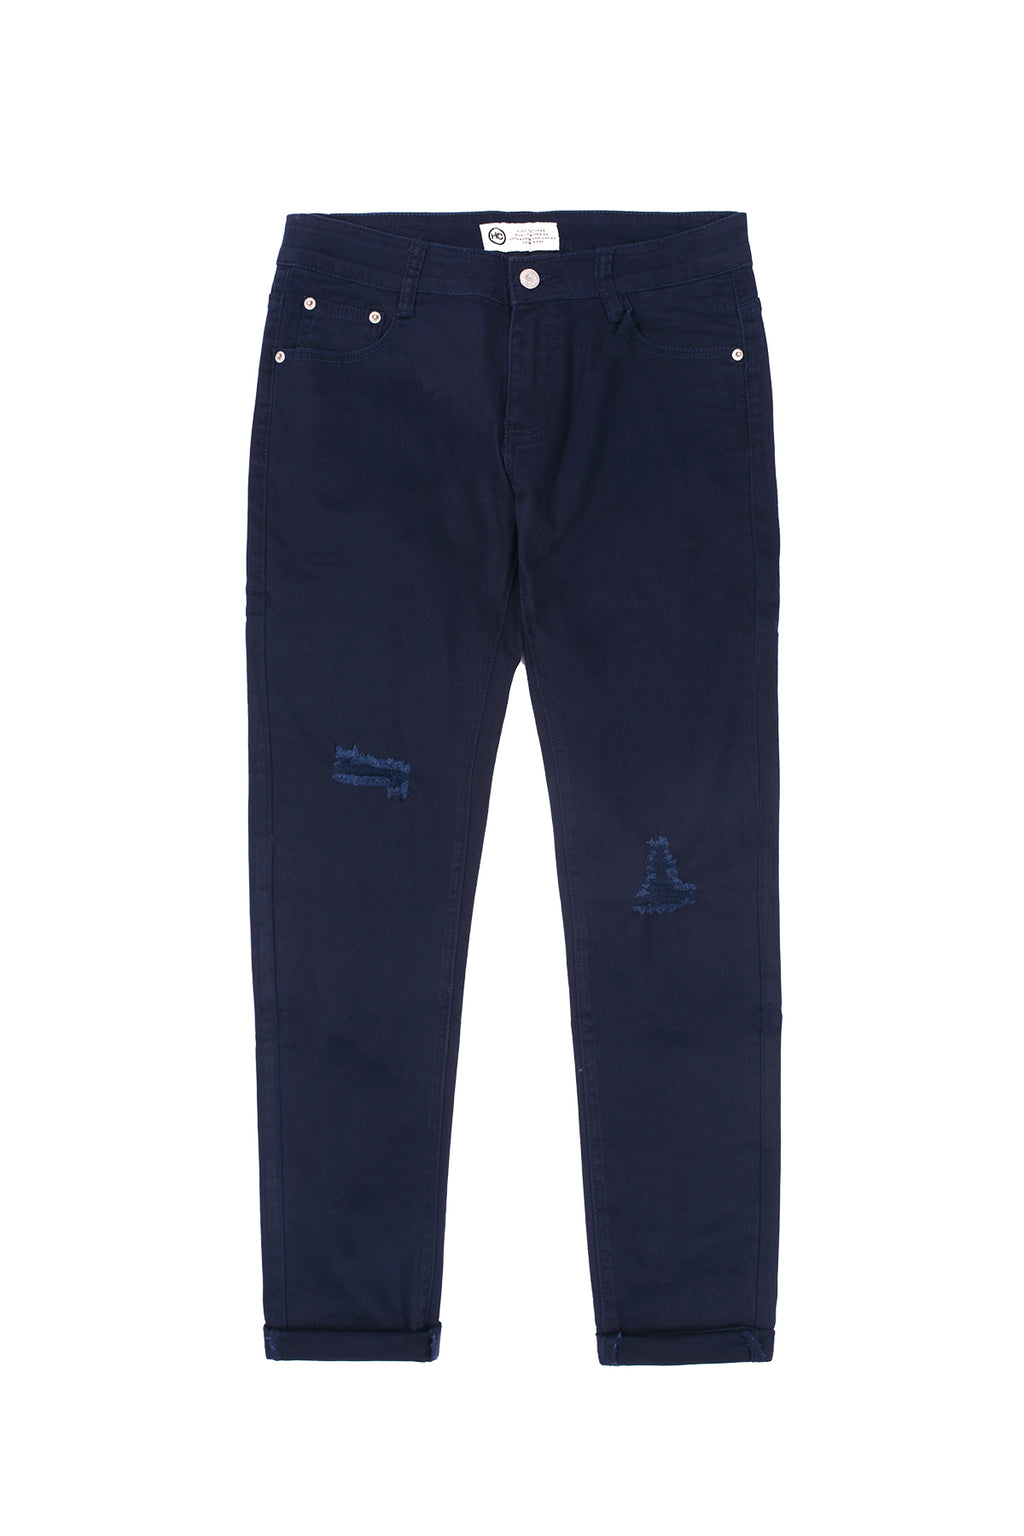 SKINNY-FIT RIPPED PANT | NAVY - 114